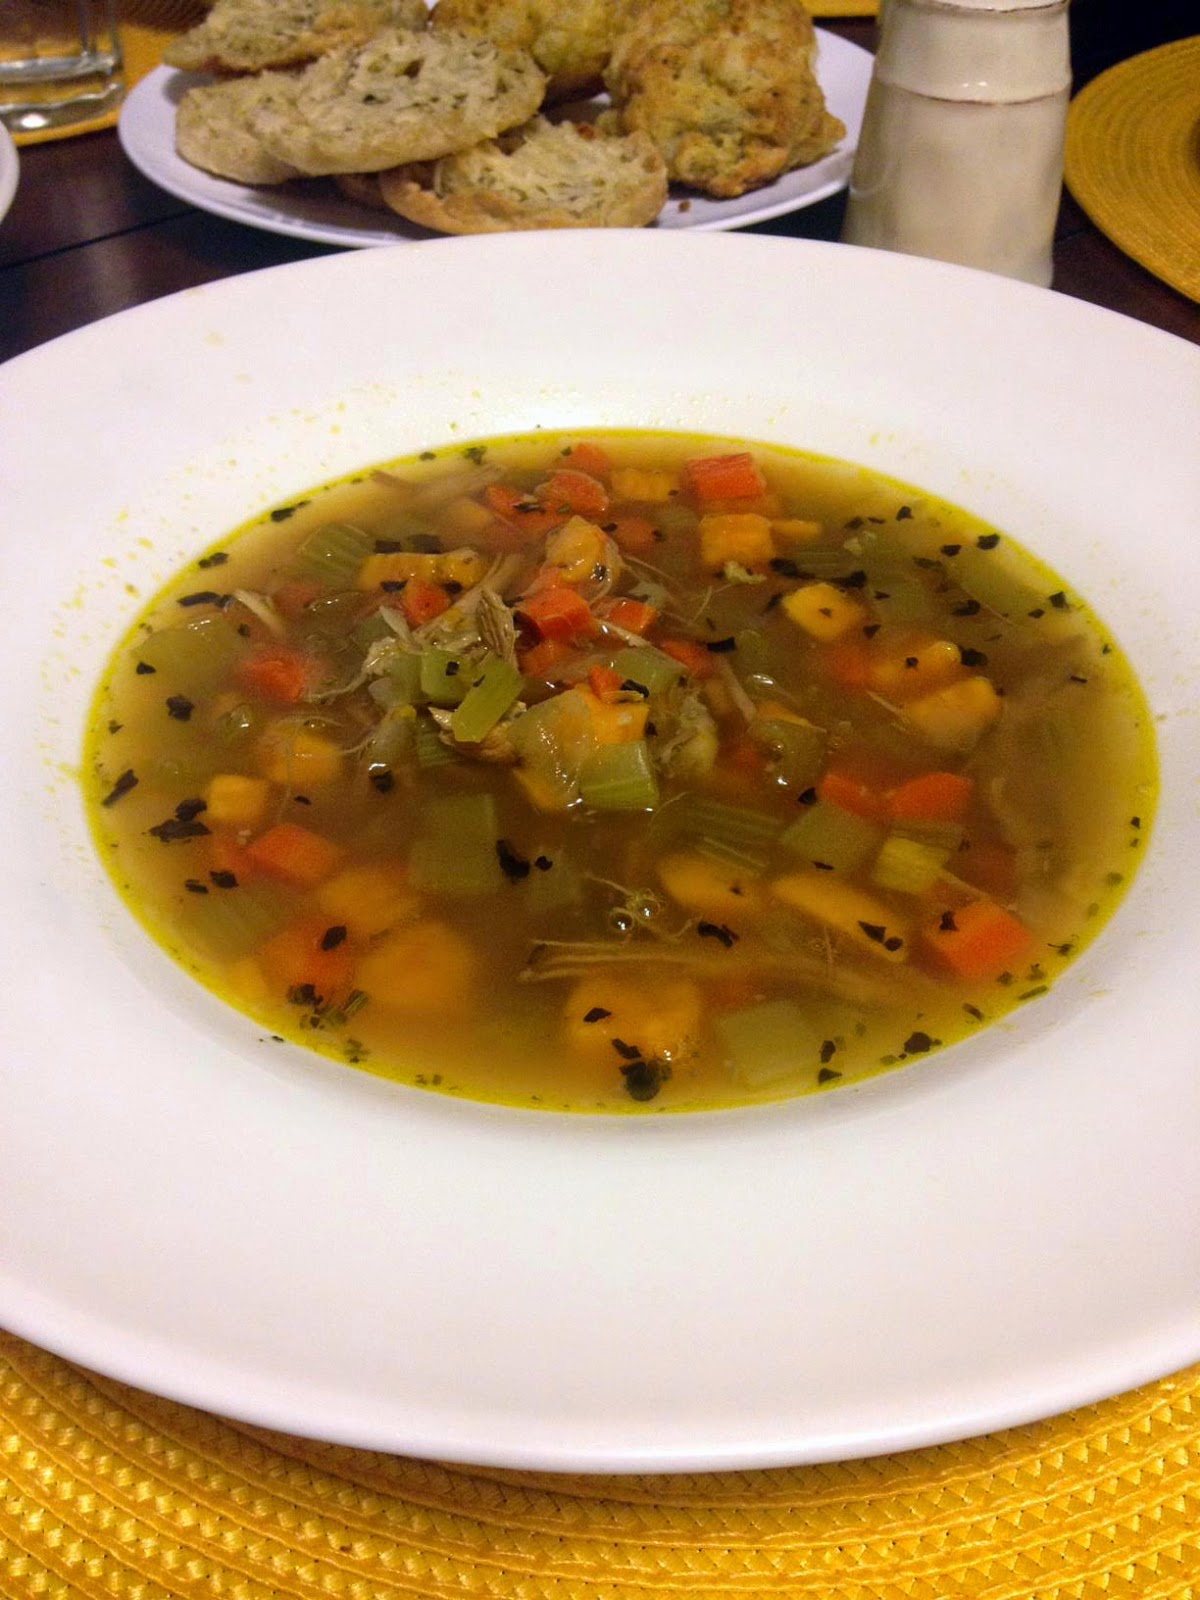 Resourceful Paleo: Roasted Turkey Soup